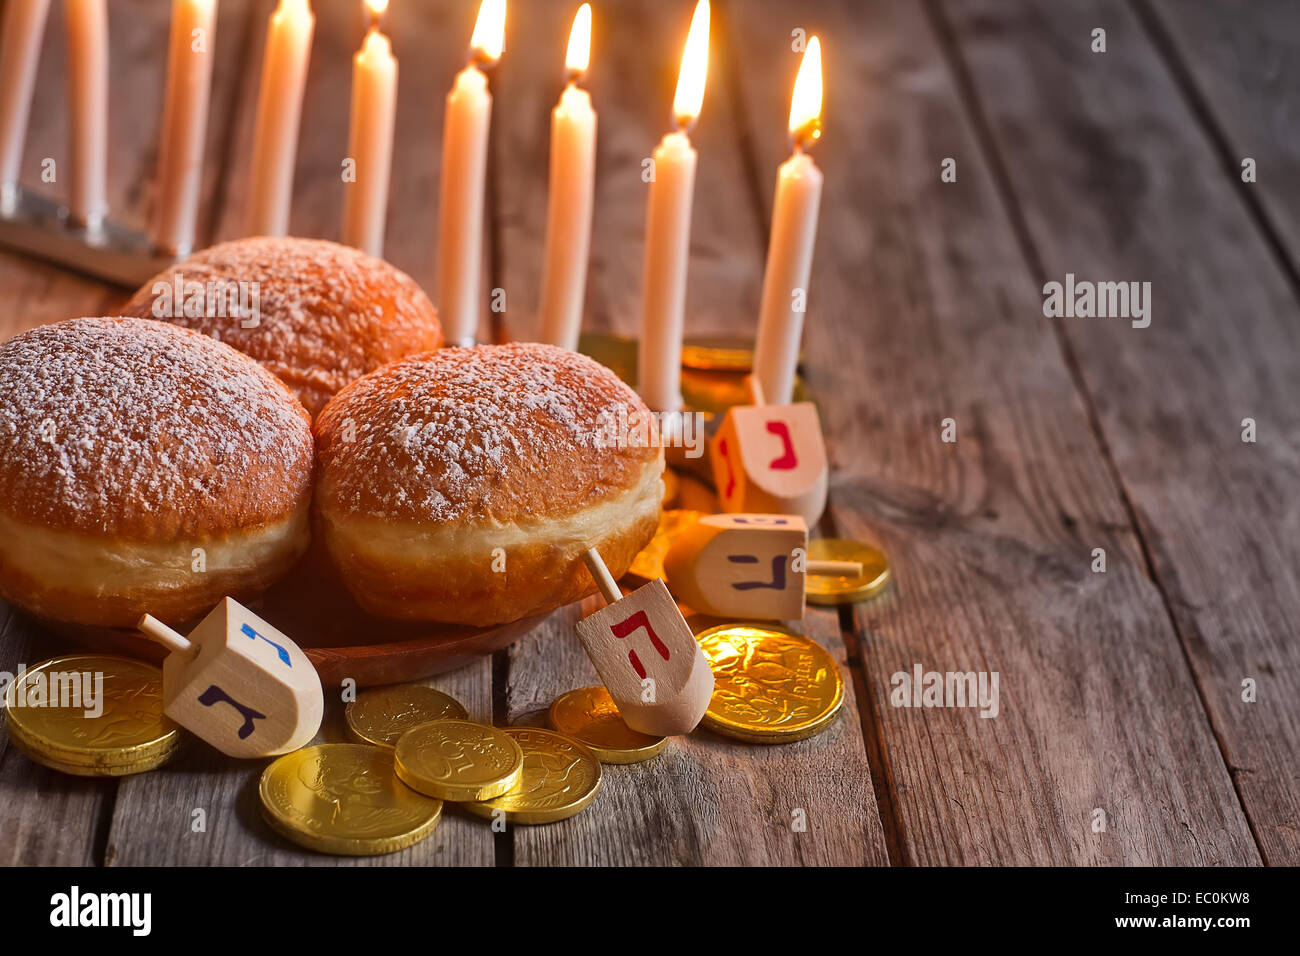 Jewish holiday hannukah symbols - menorah, doughnuts, chockolate coins and wooden dreidels. Copy space background. - Stock Image